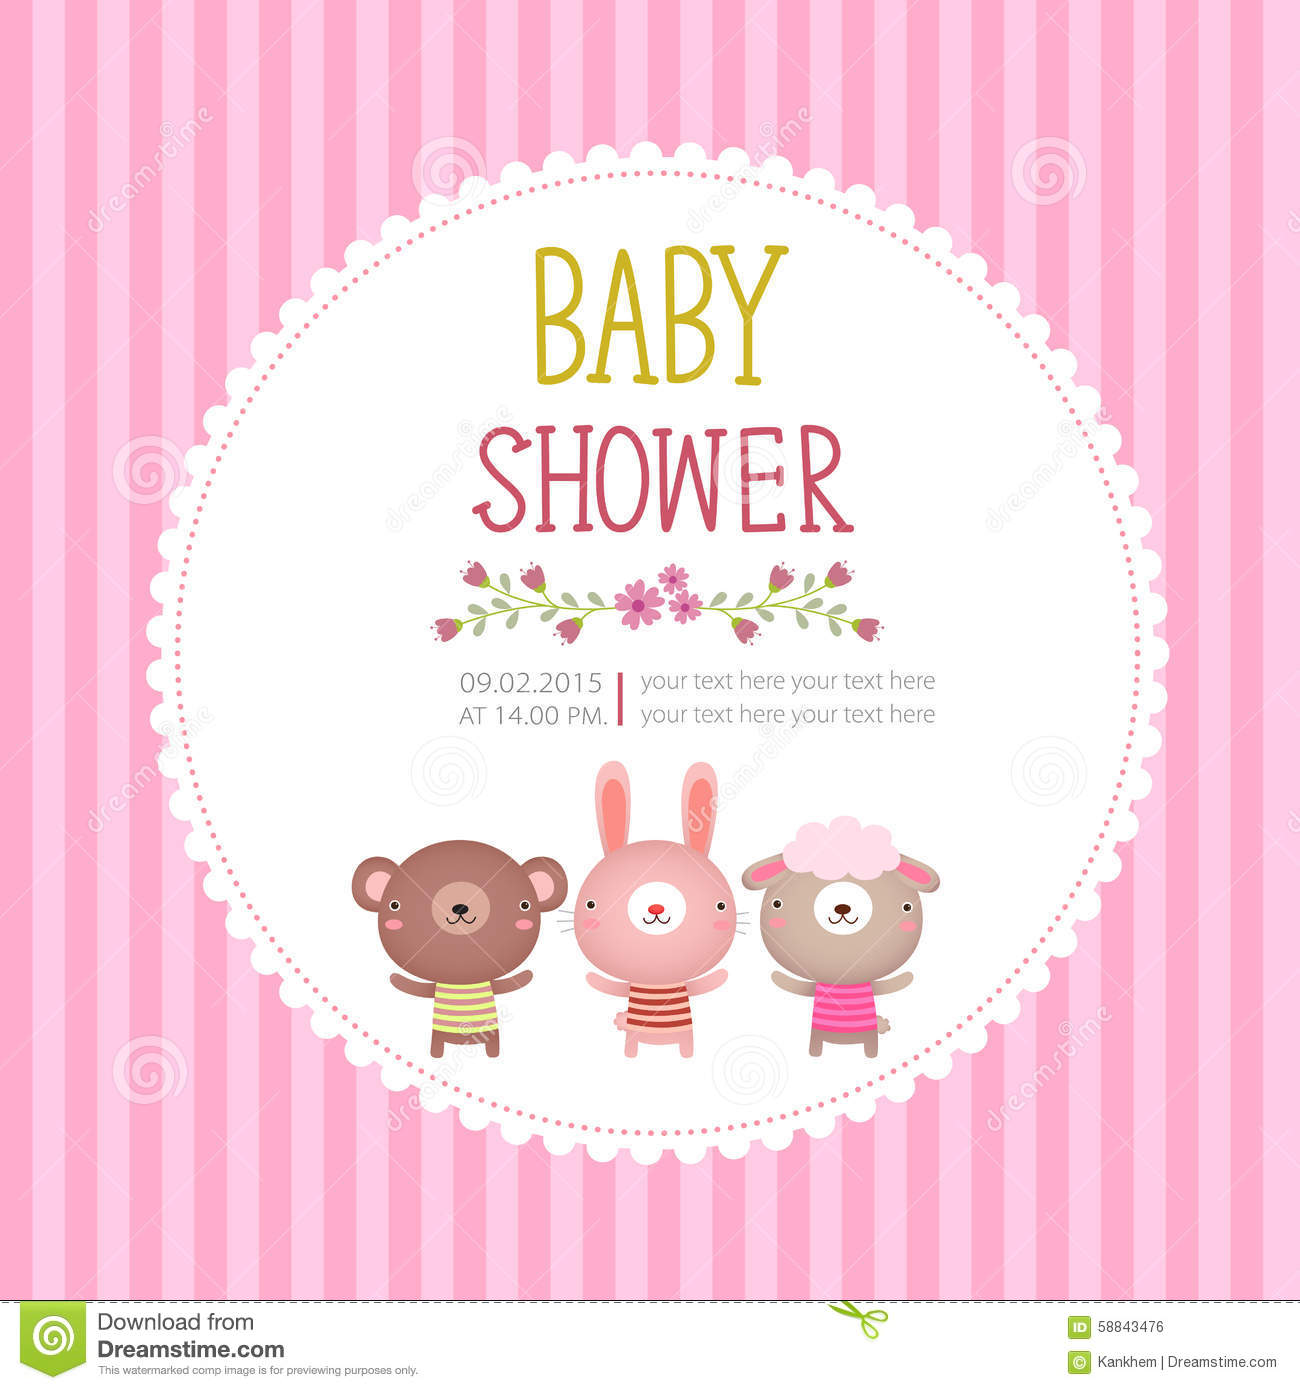 Baby shower invitation card template on pink background stock vector baby shower invitation card template on pink background stopboris Image collections